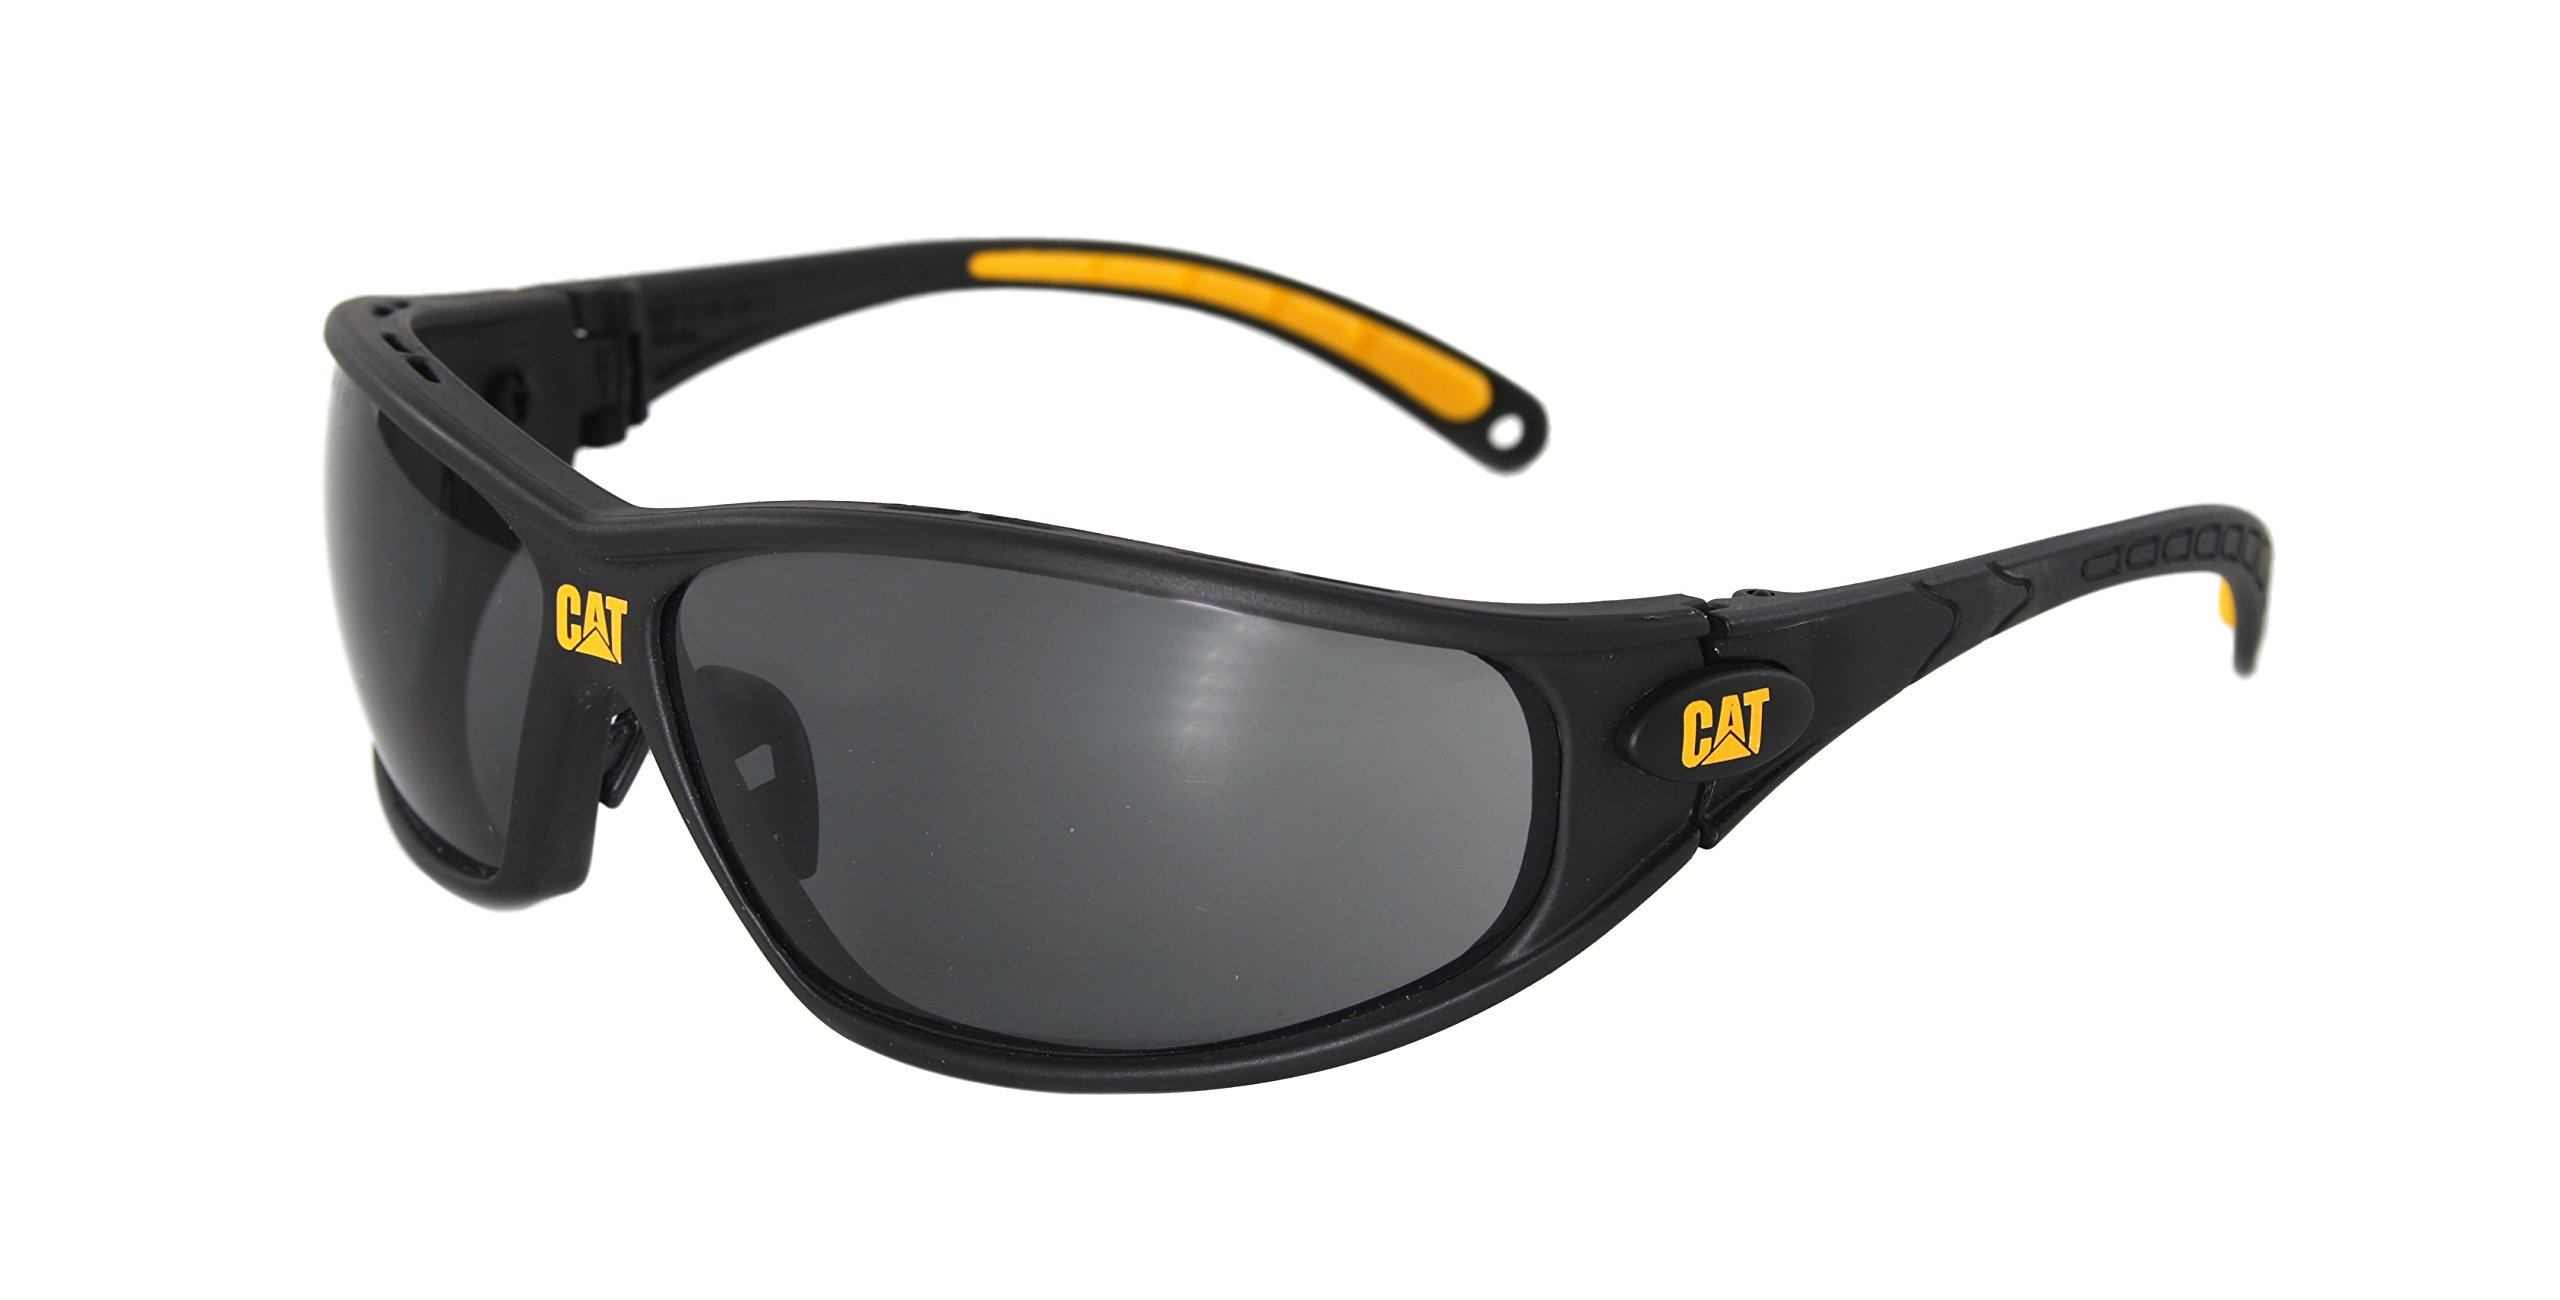 Caterpillar CSA-TREAD-104-AF Filter Category 5-2.5 Smoke Lens Safety Glasses, Small